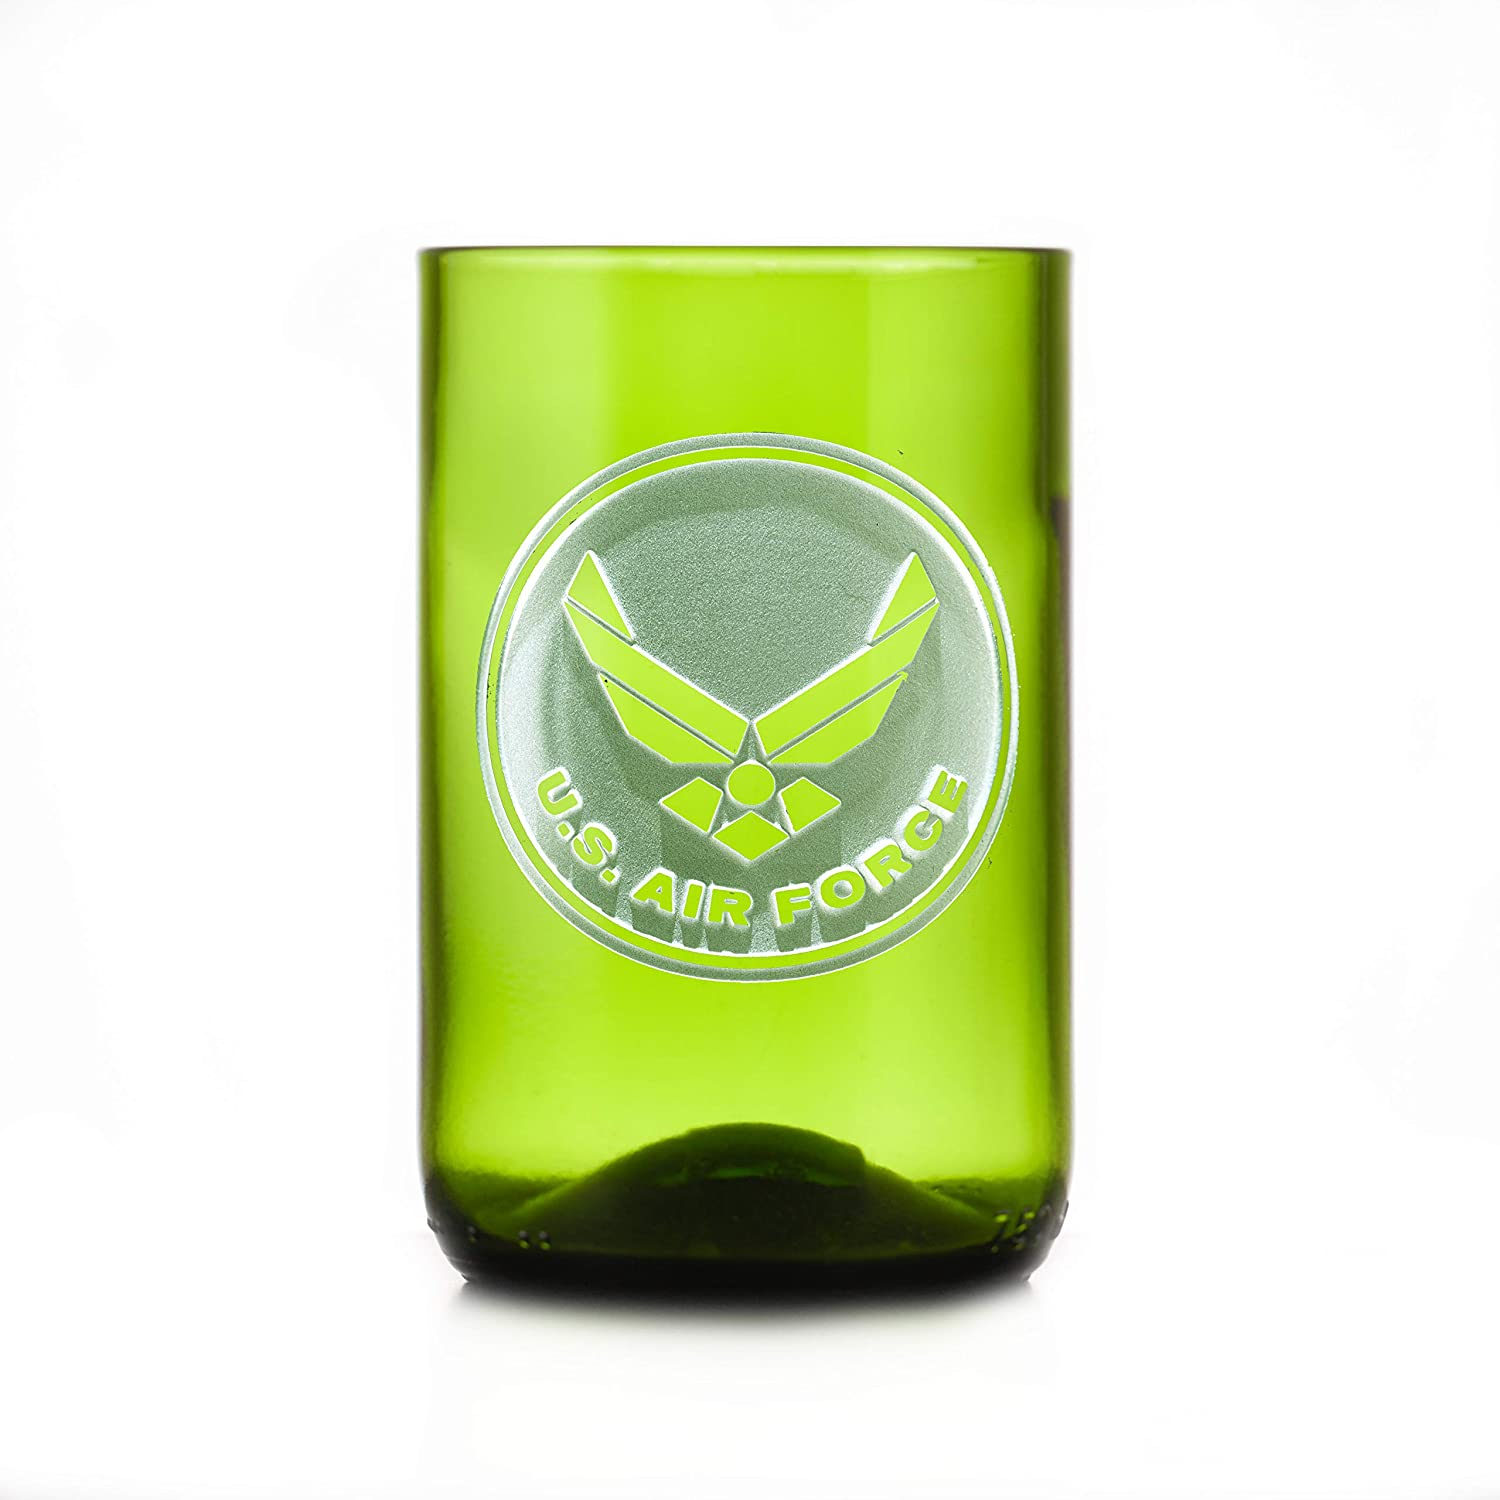 Air Force Gift For Airman Engraved Limited time for free shipping Green Bottle Sales for sale Recycled G Wine